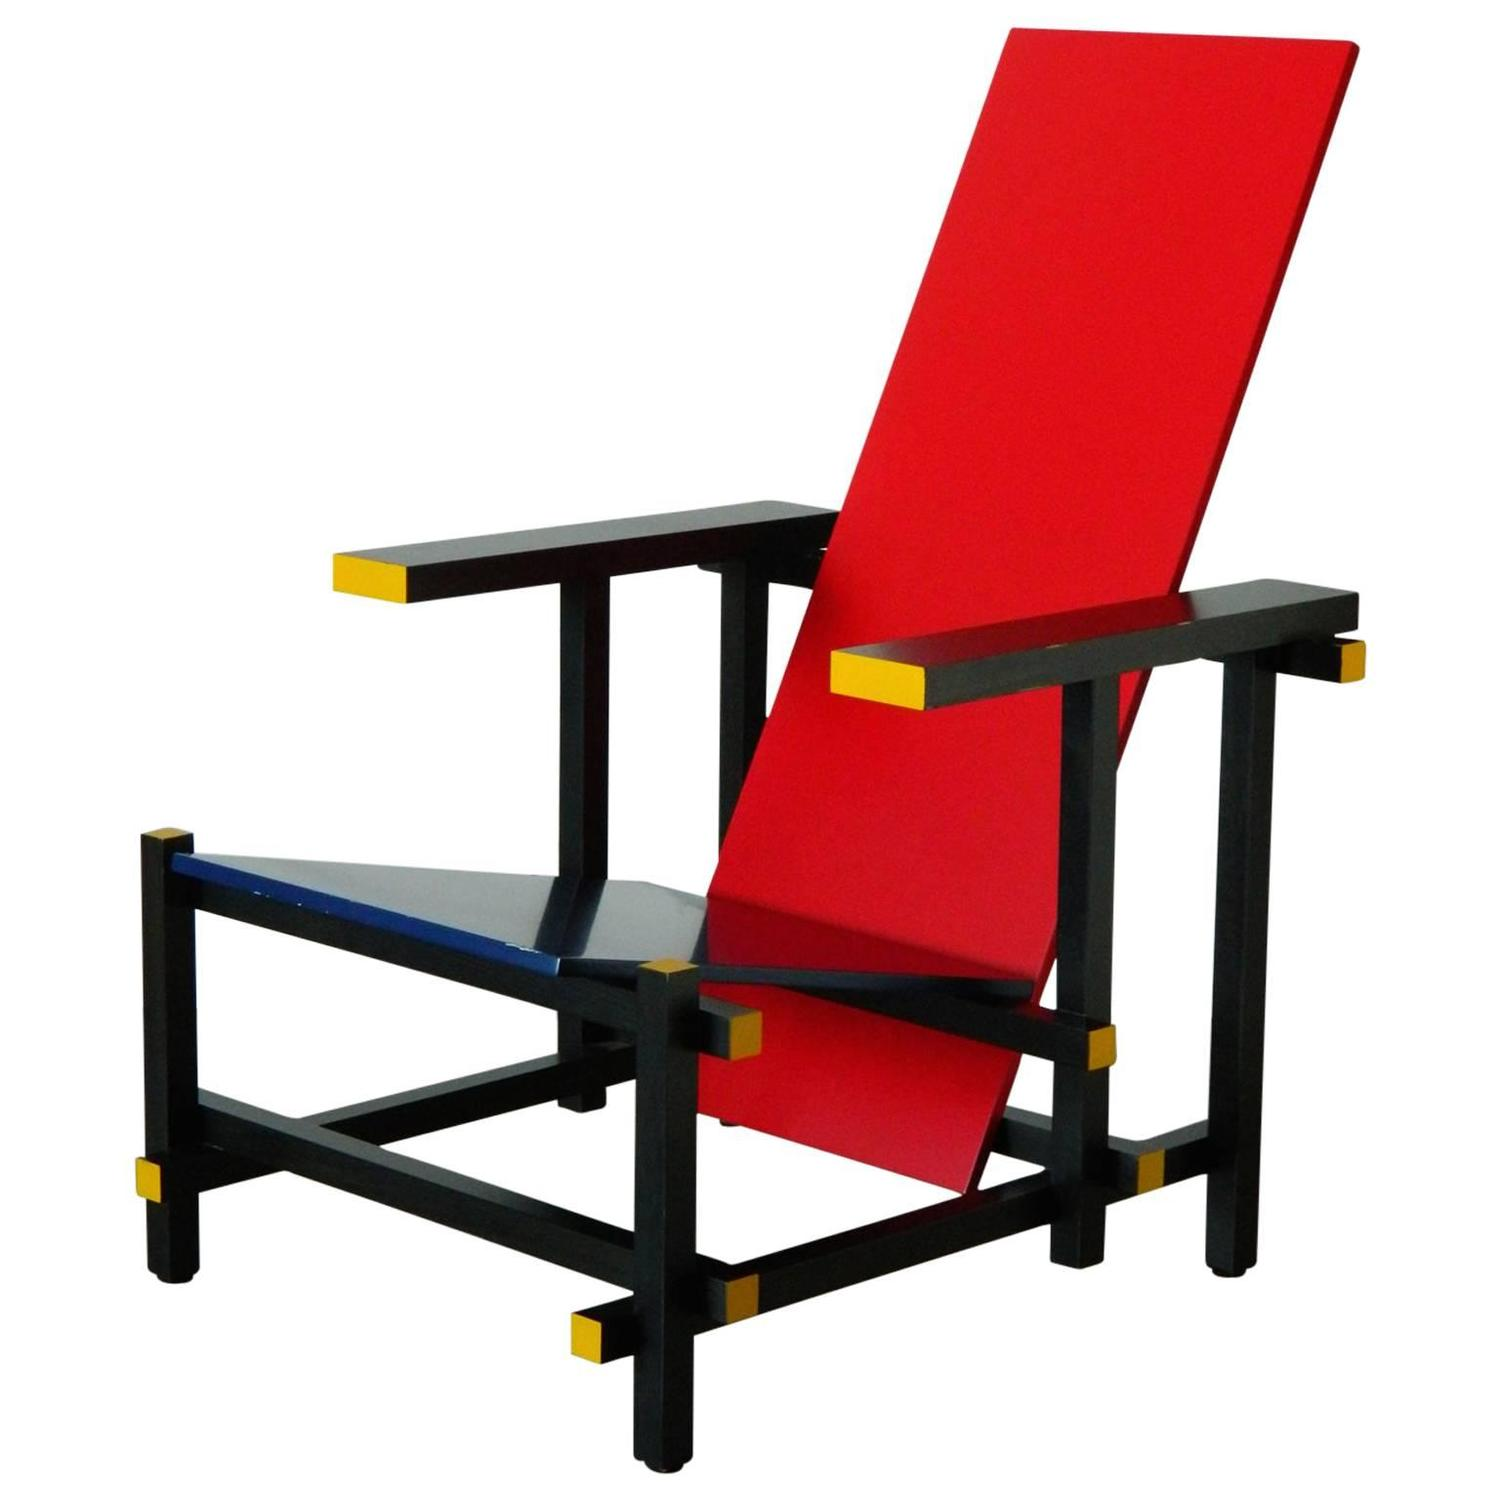 Red and Blue Chair by Gerrit Thomas Rietveld For Sale at 1stdibs